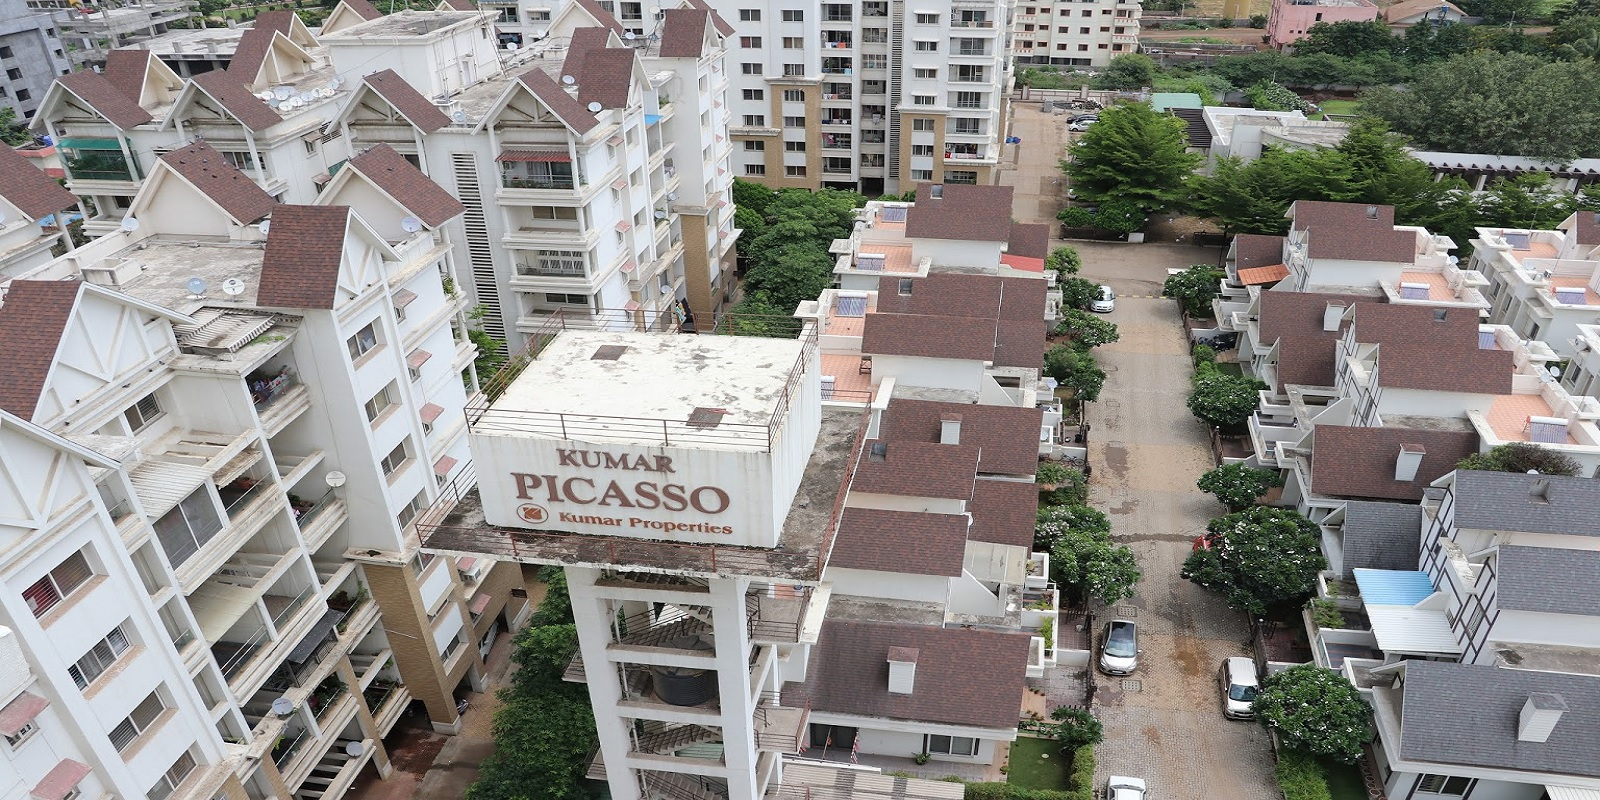 kumar picasso villa project project large image1